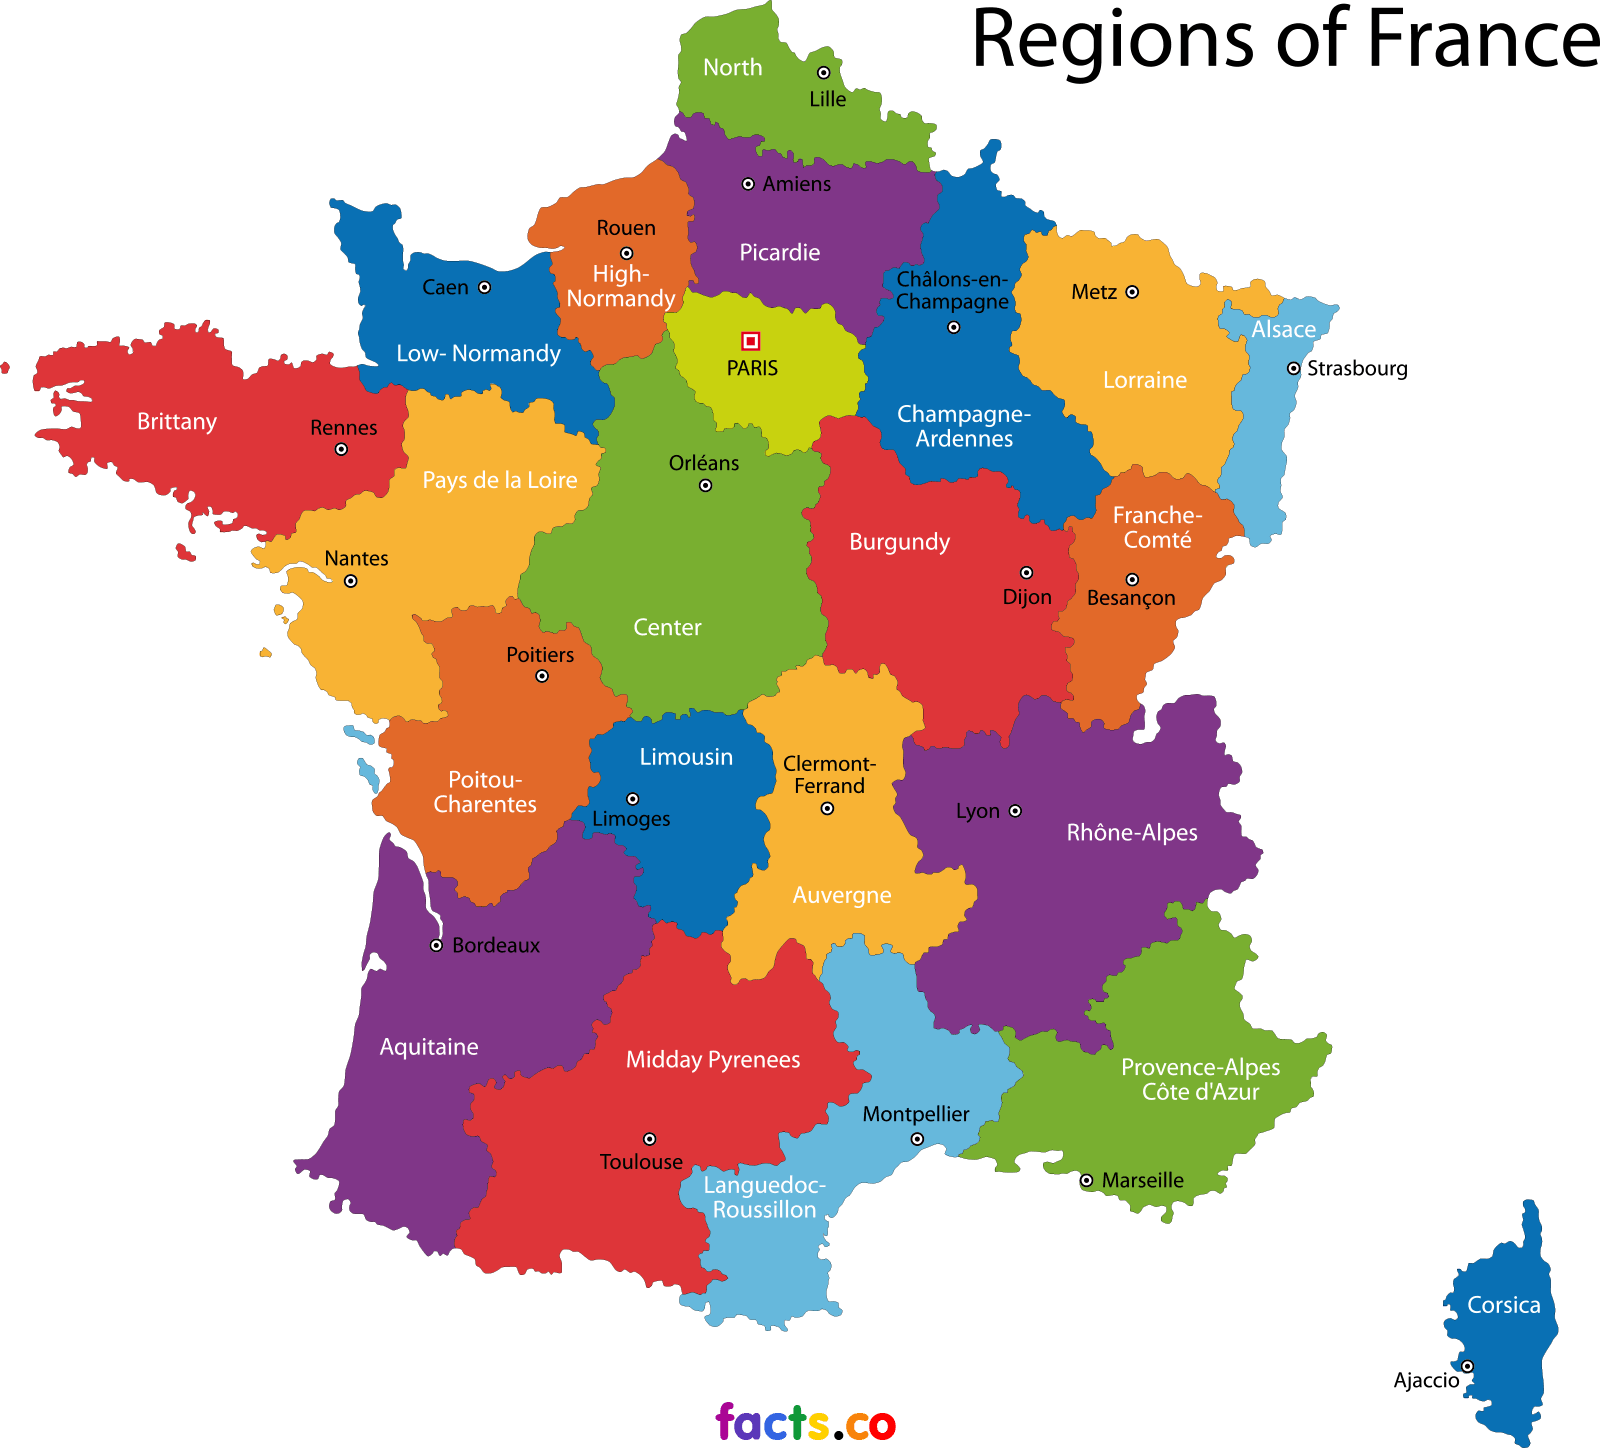 Map Of France France.France Map Blank Political France Map With Cities French Lessons